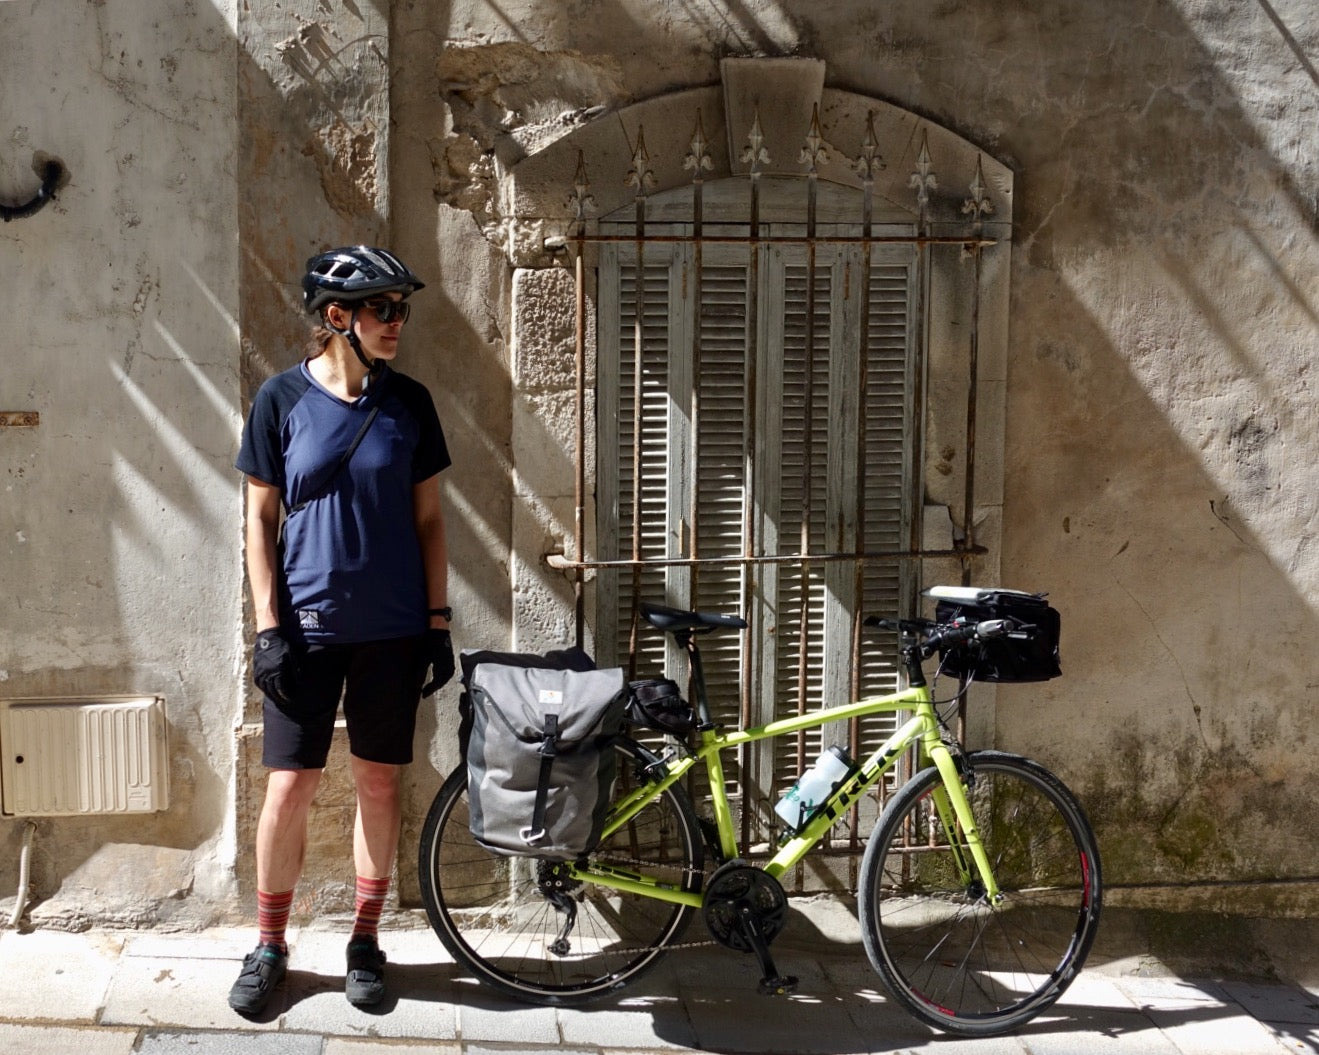 5 Mistakes From My First Self-Supported Bike Tour - Chelsea With Bike